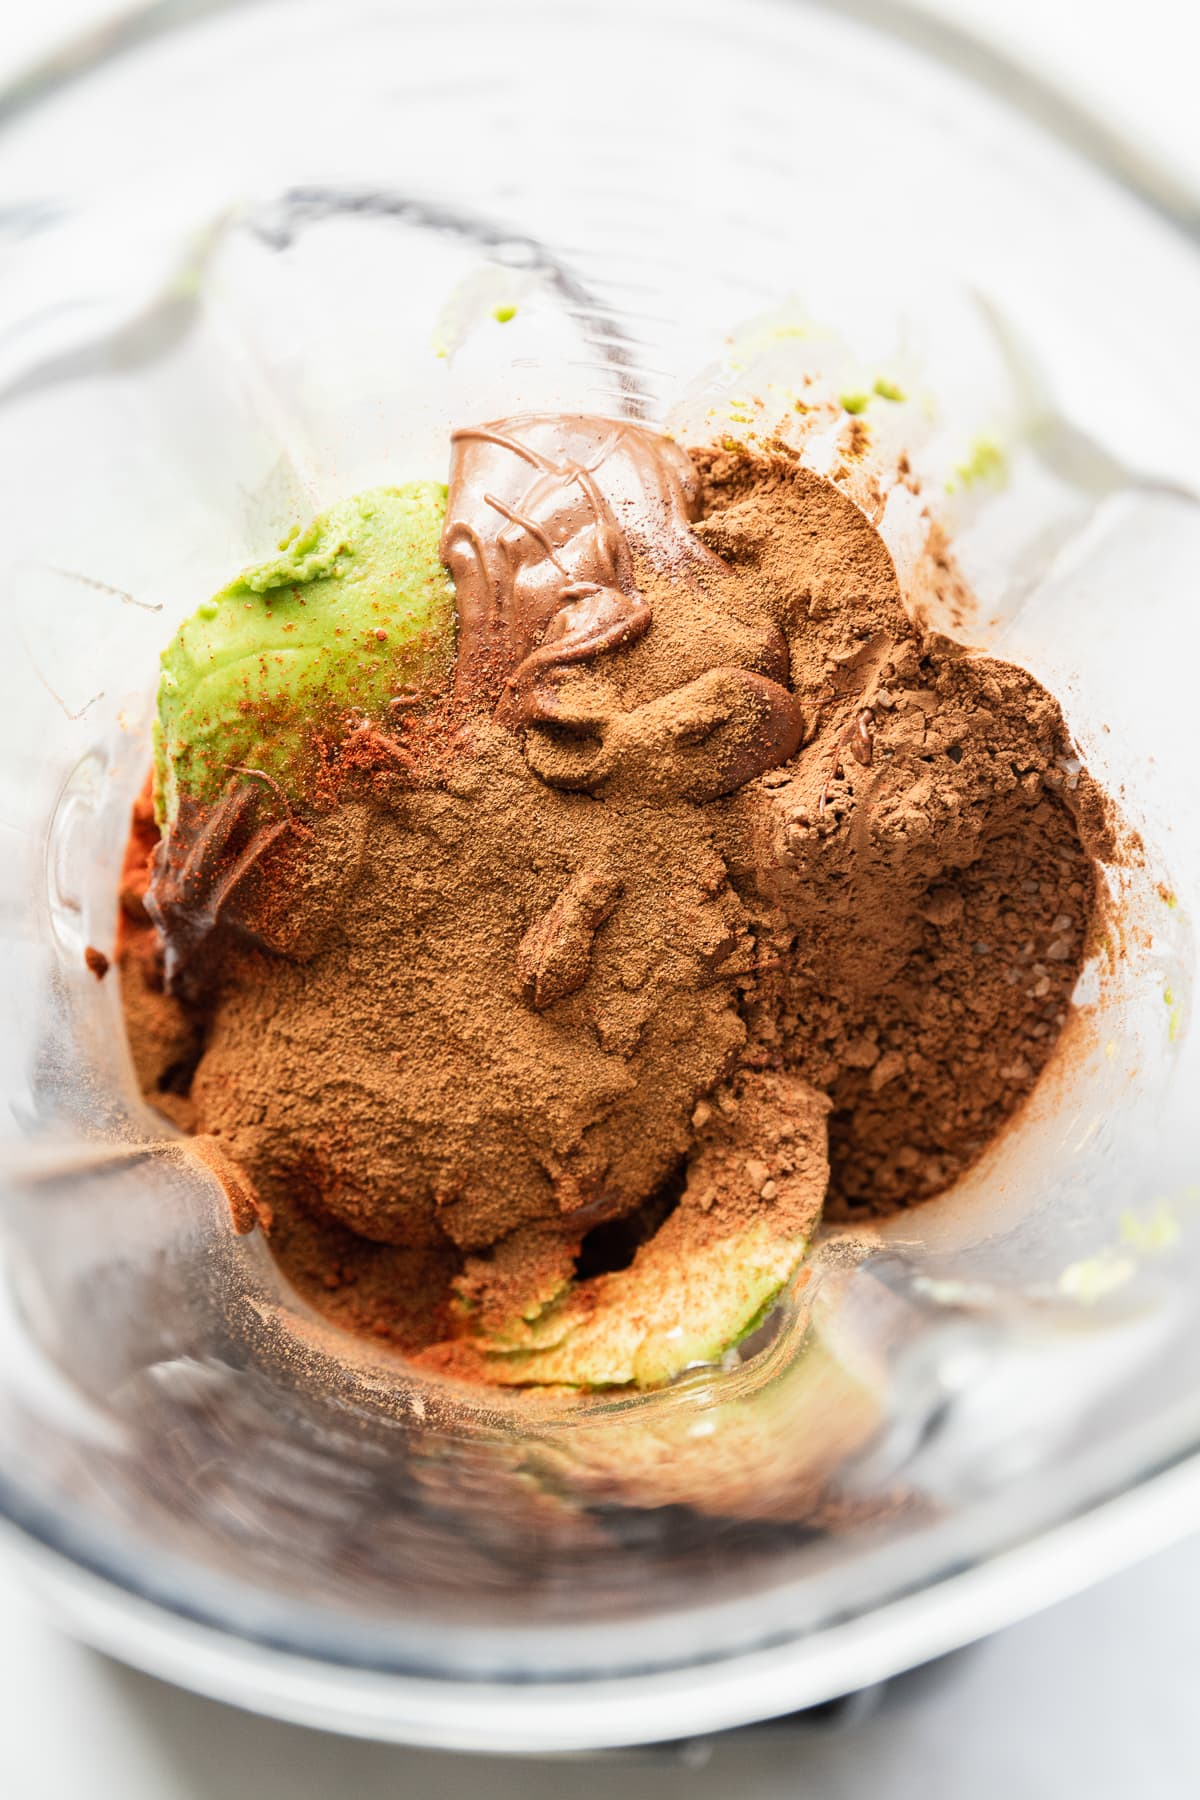 Ingredients for Avocado Chocolate Mousse in a blender.